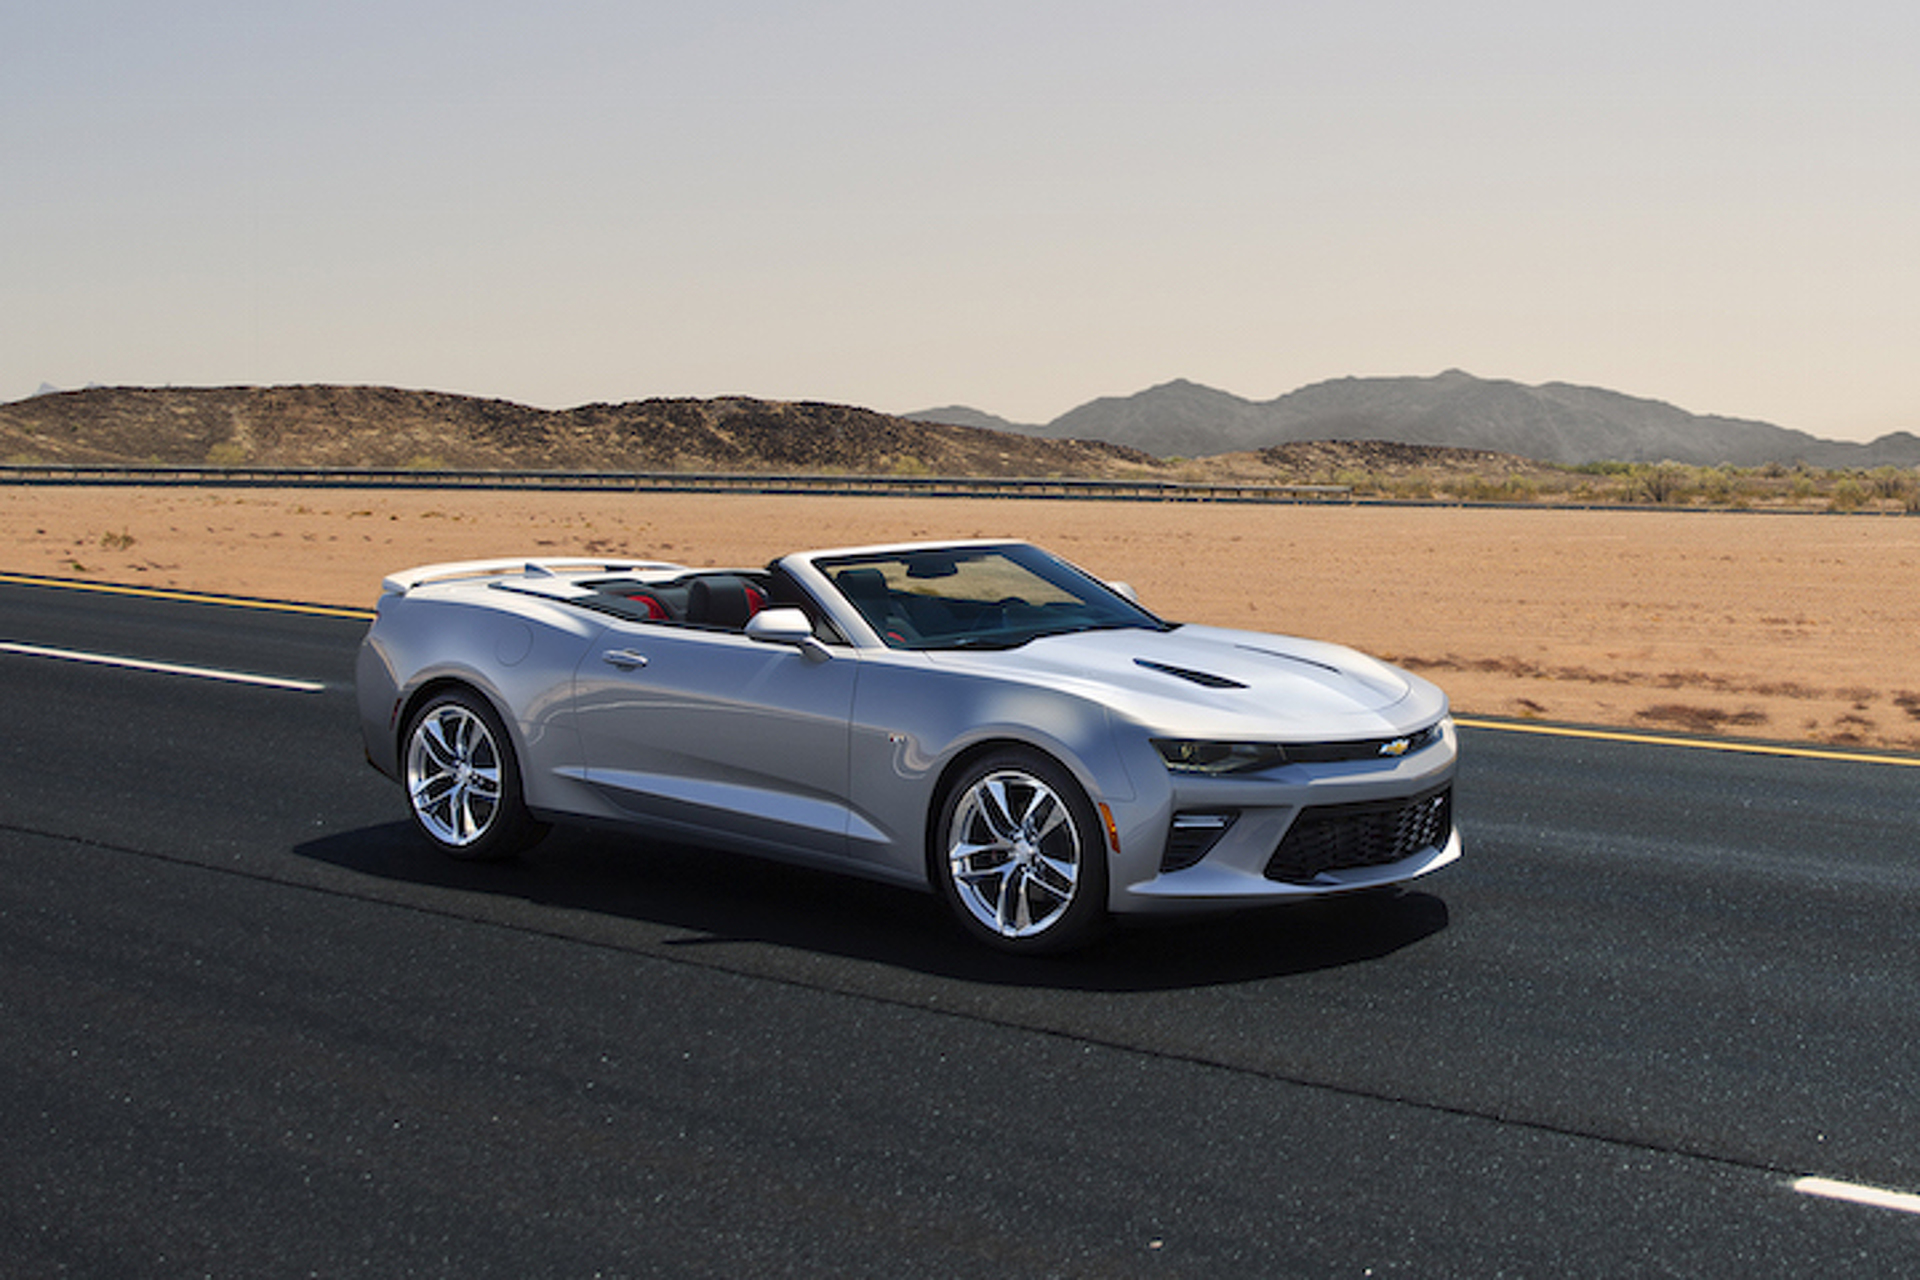 Camaro Driver Cited for Doing 171 MPH in Minnesota